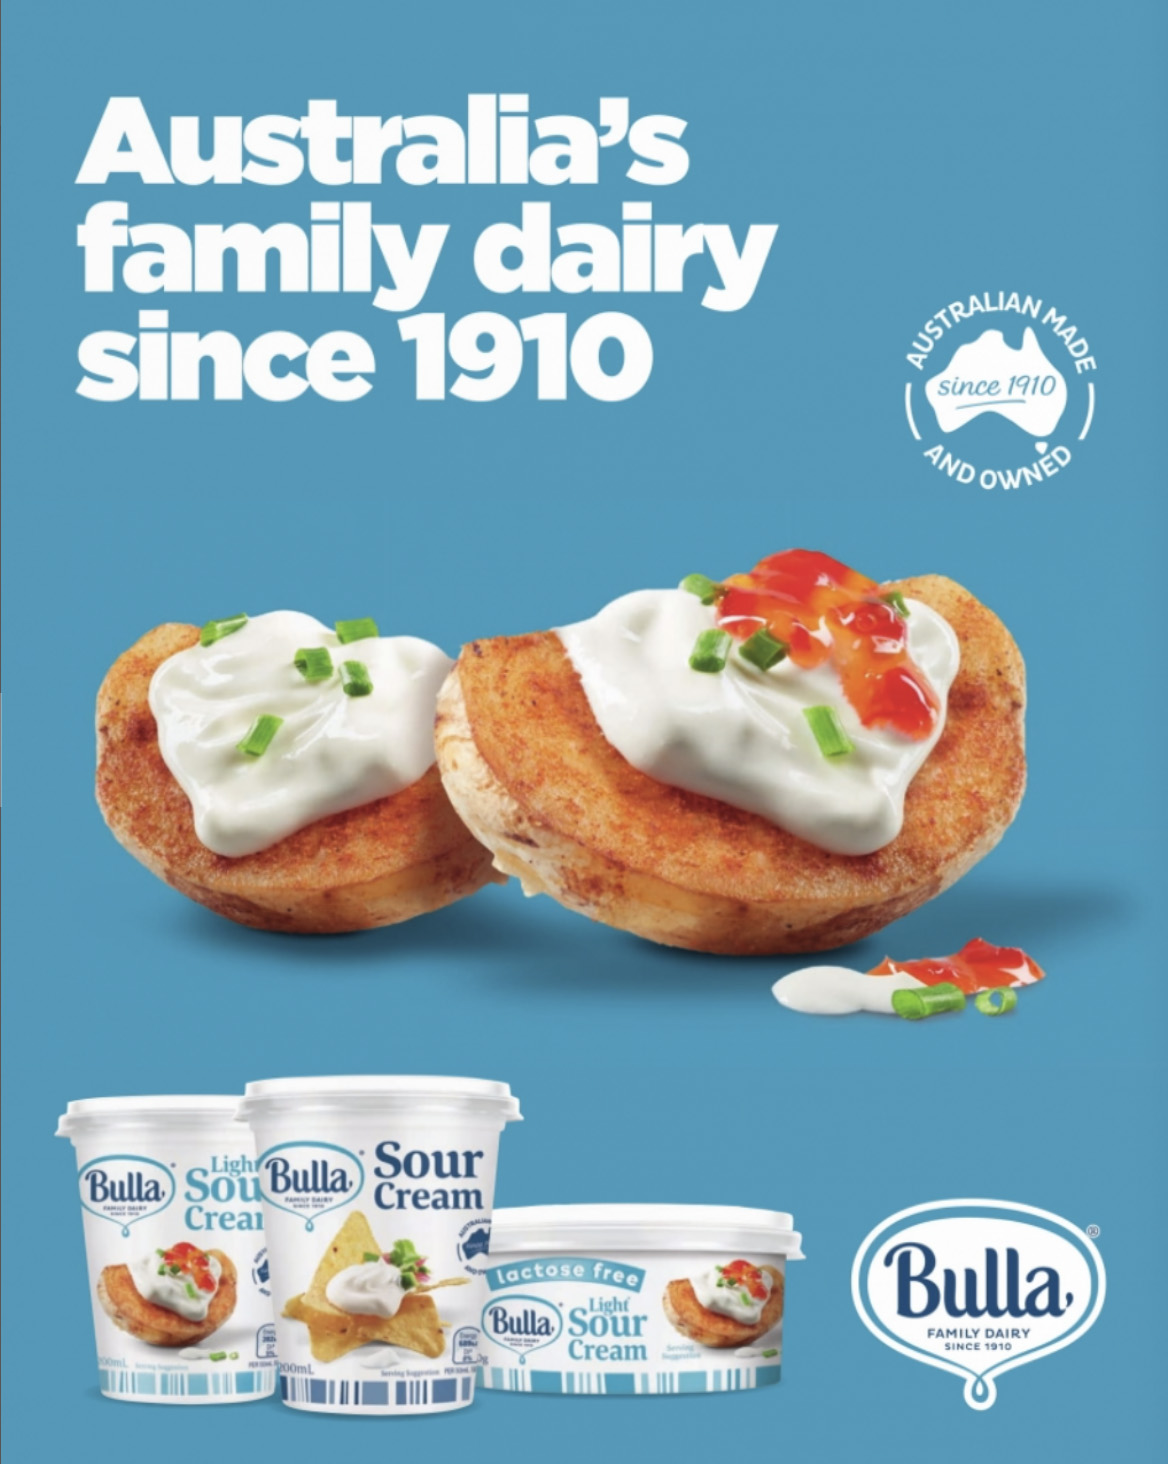 Bulla Sour Cream Ad FMCG Food styling